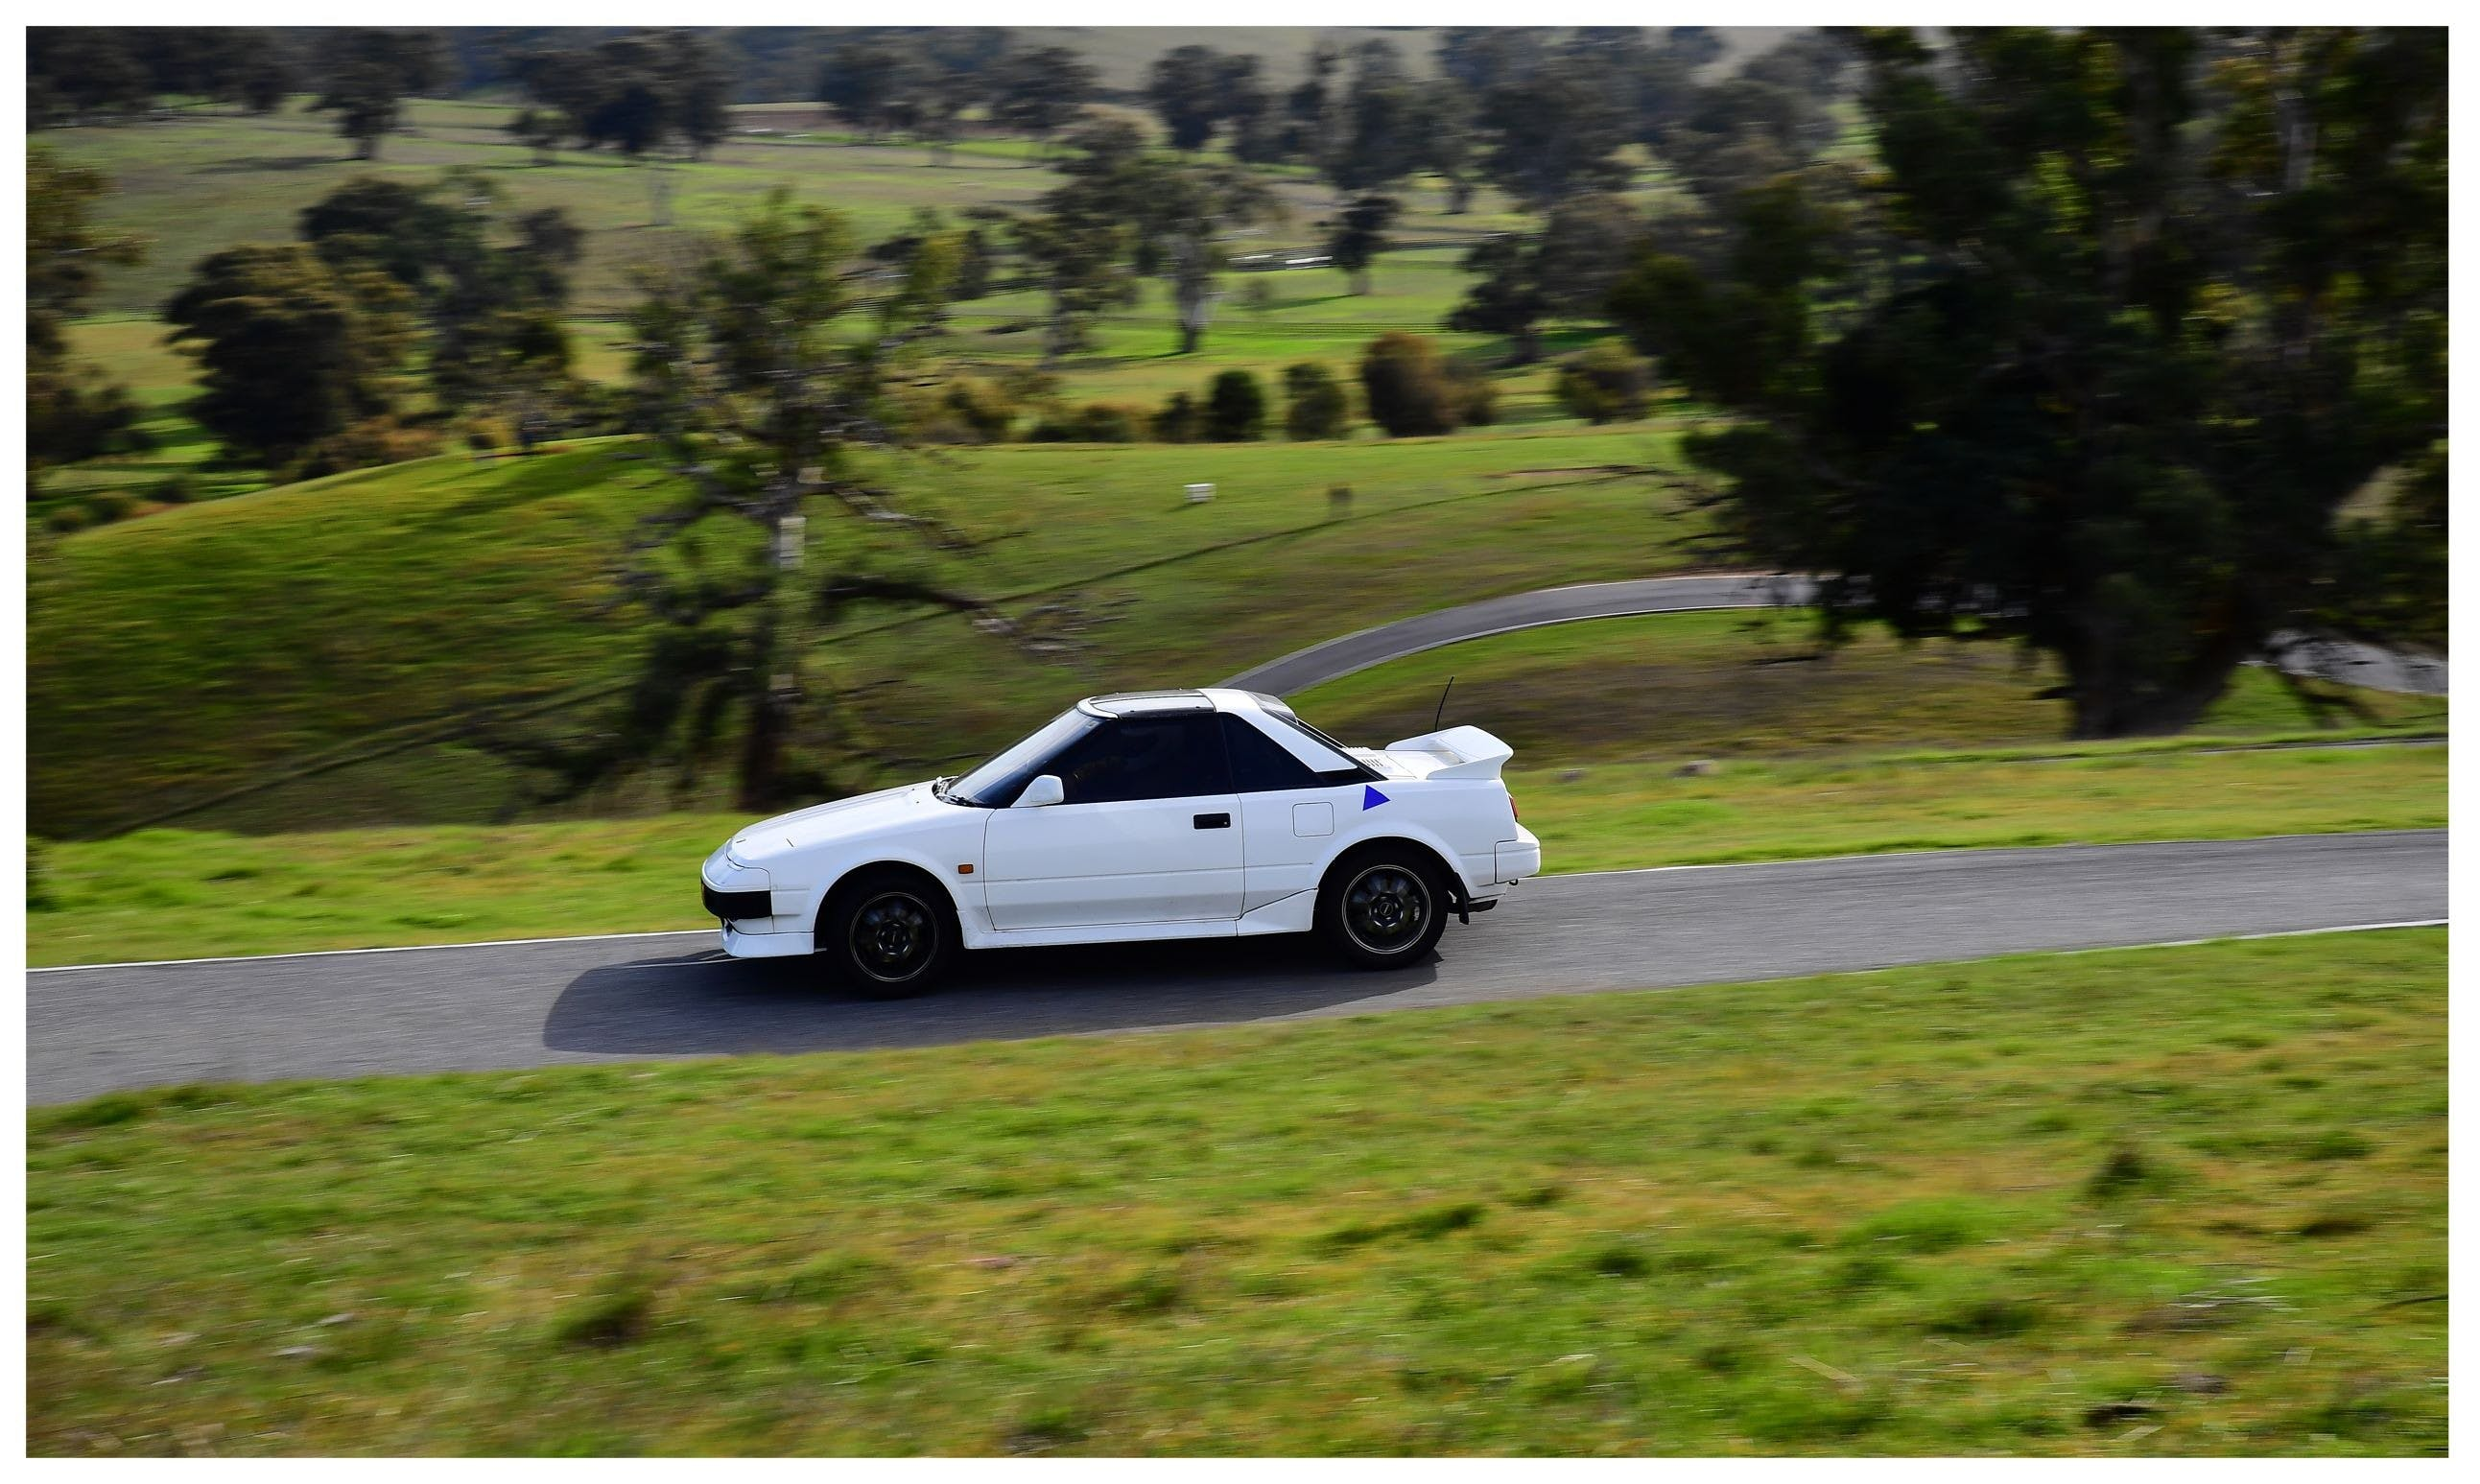 Winter Cup 4 - Hillclimb - Accommodation Mt Buller